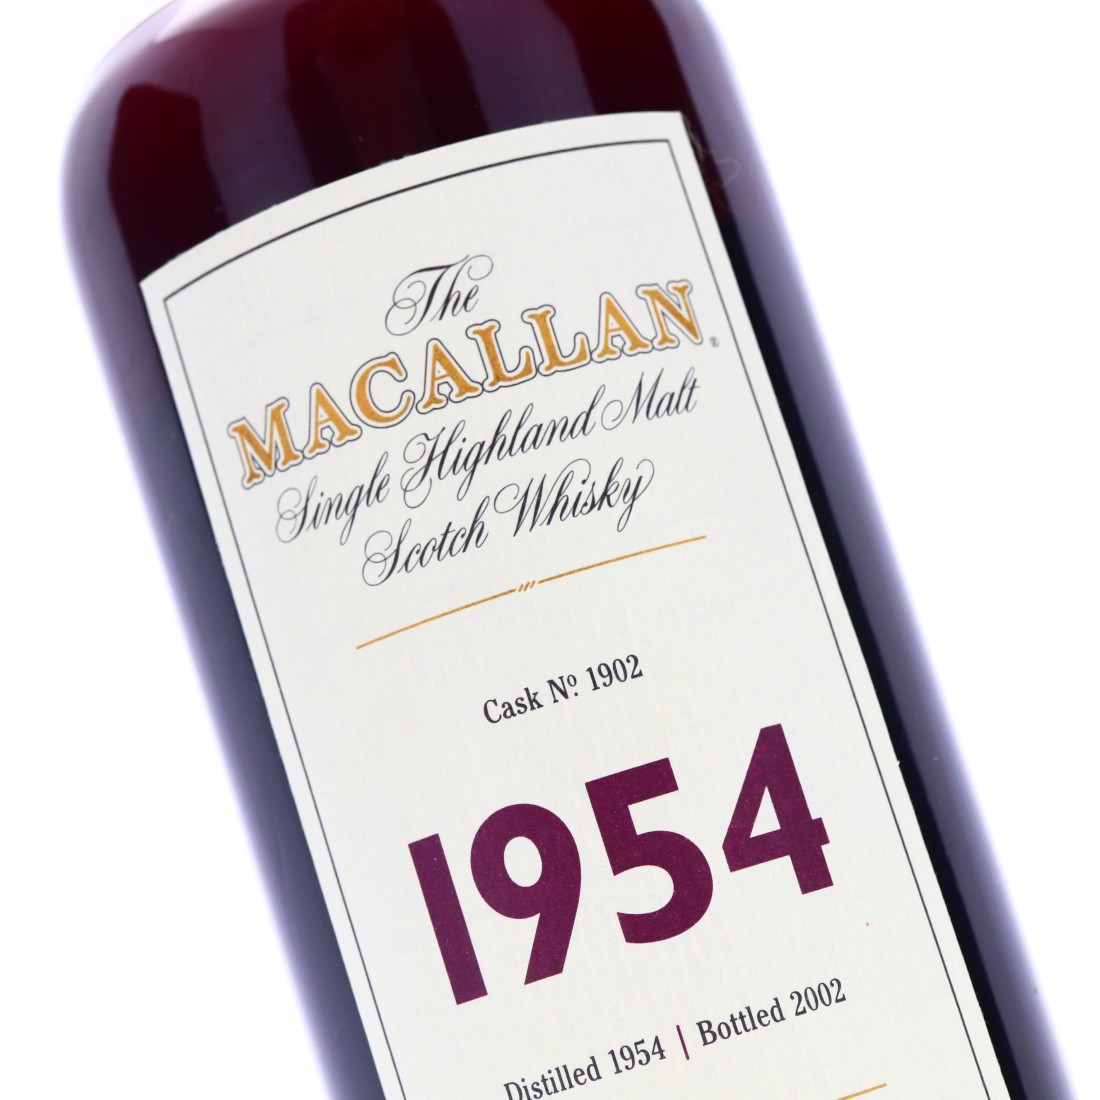 Macallan 1954 Fine and Rare 47 Year Old #1902